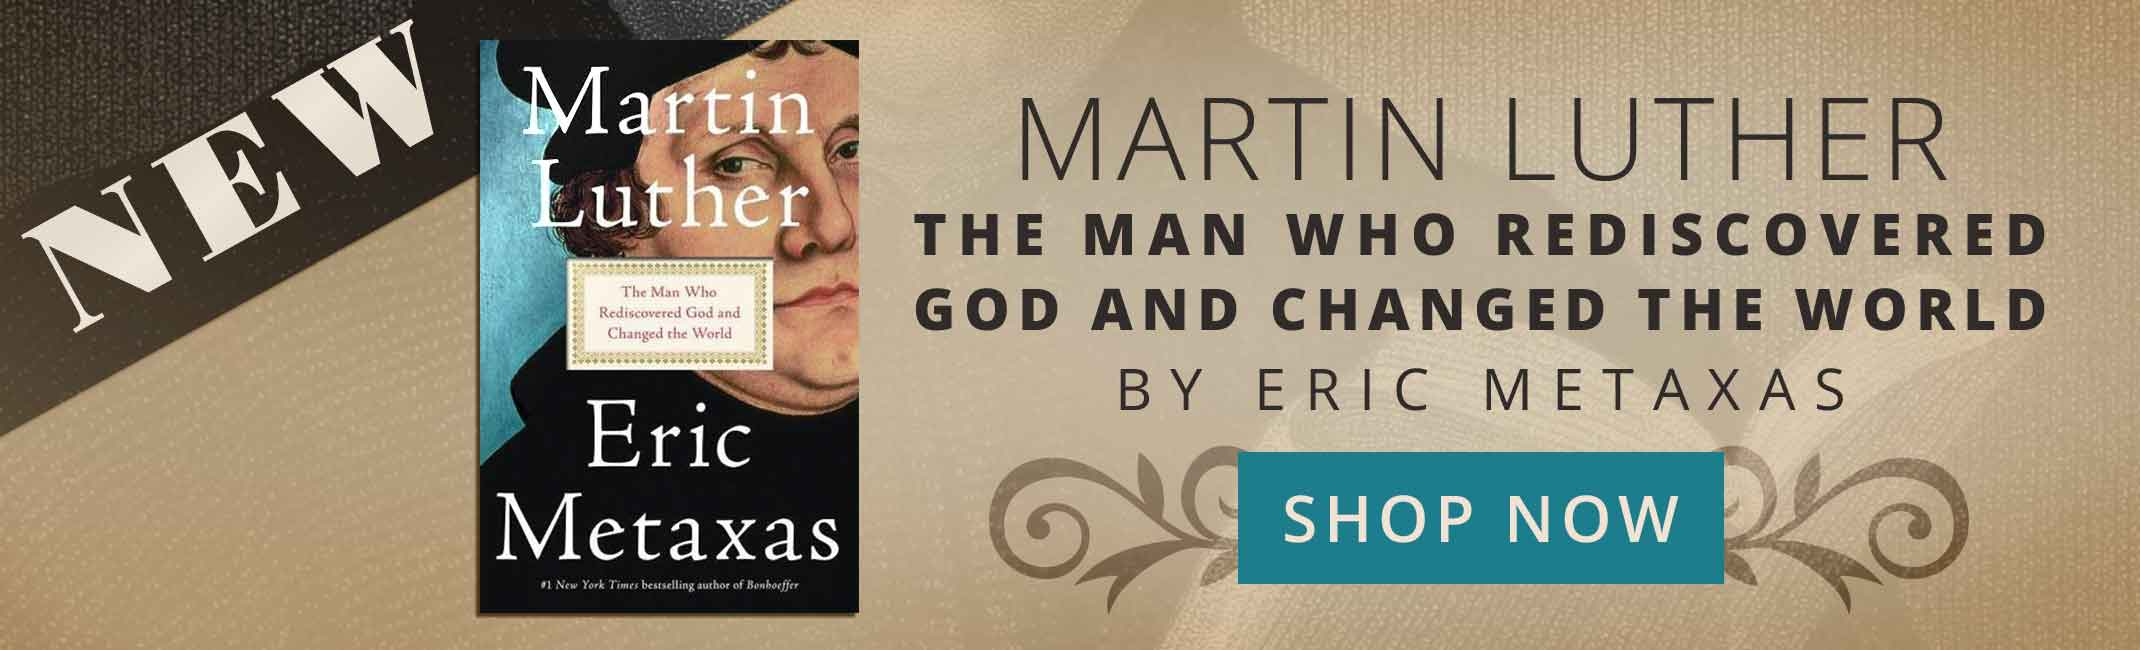 SHOP NOW: Martin Luther: The Man Who Rediscovered God and Changed the World by Eric Metaxas